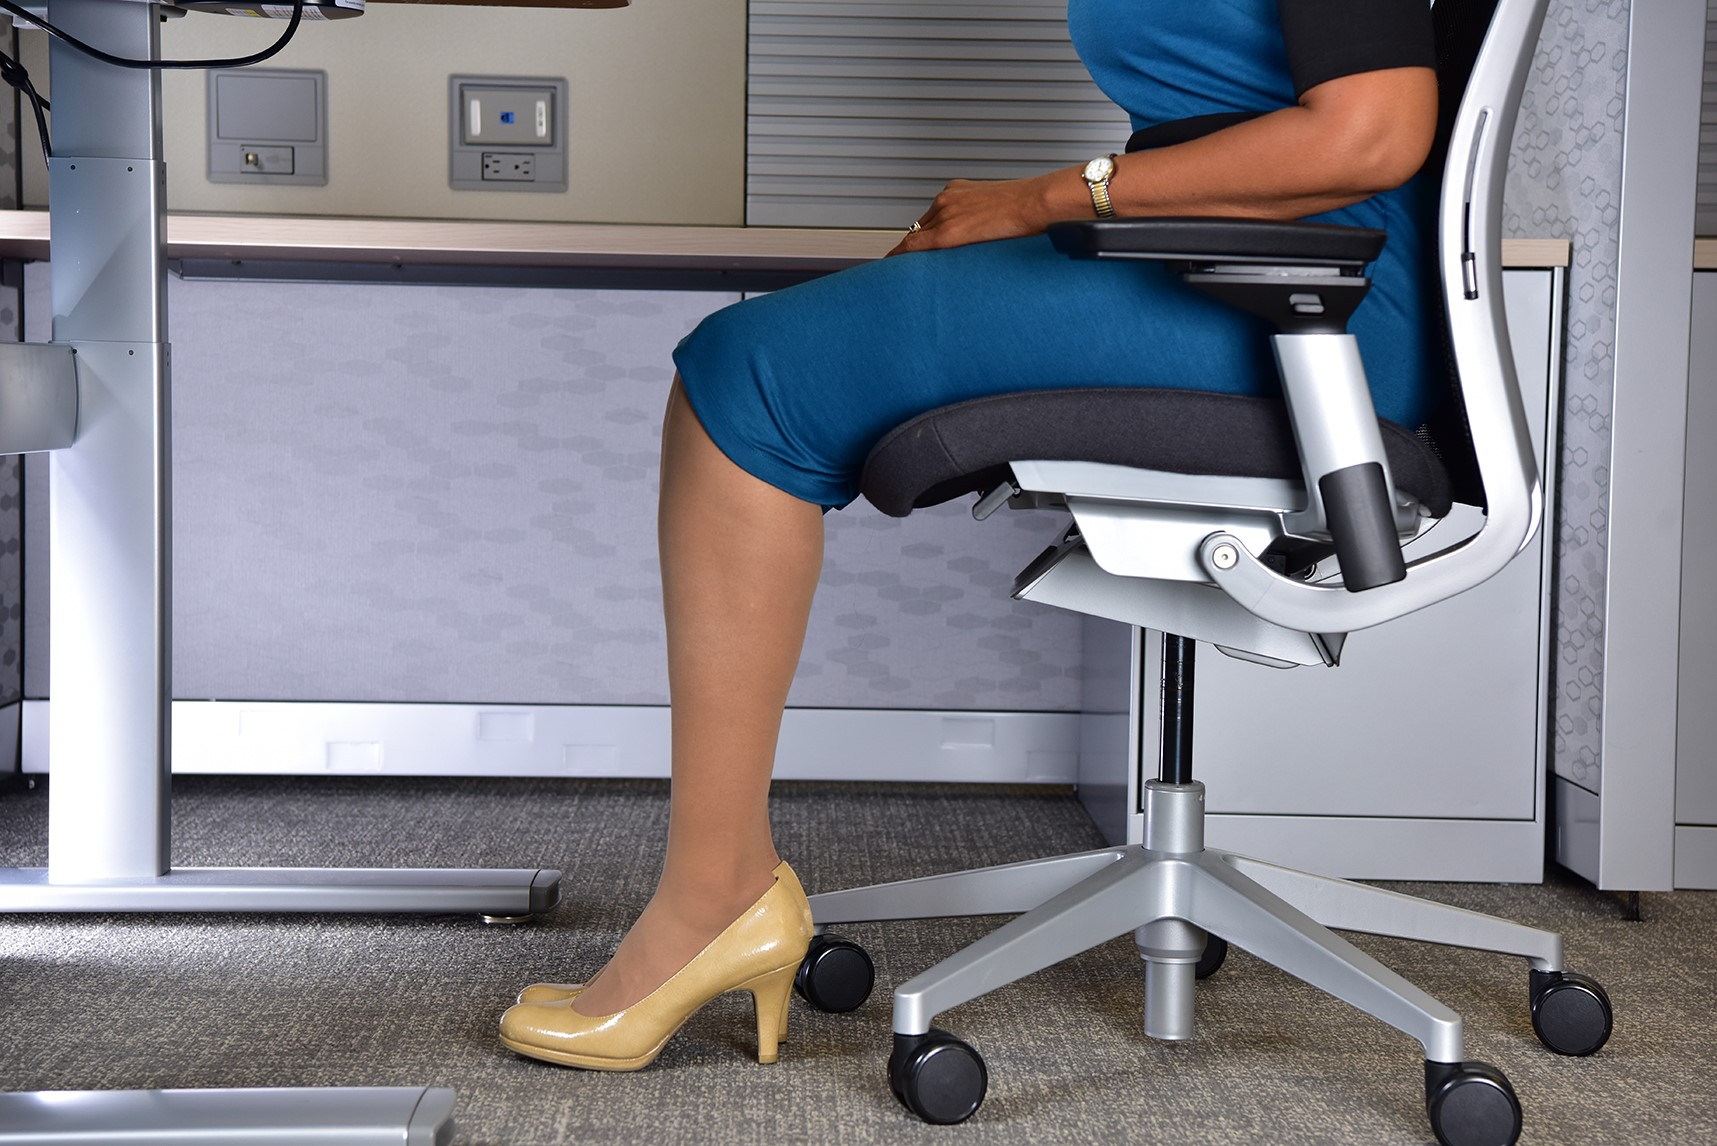 Four Key Features of an fice Chair Humantech